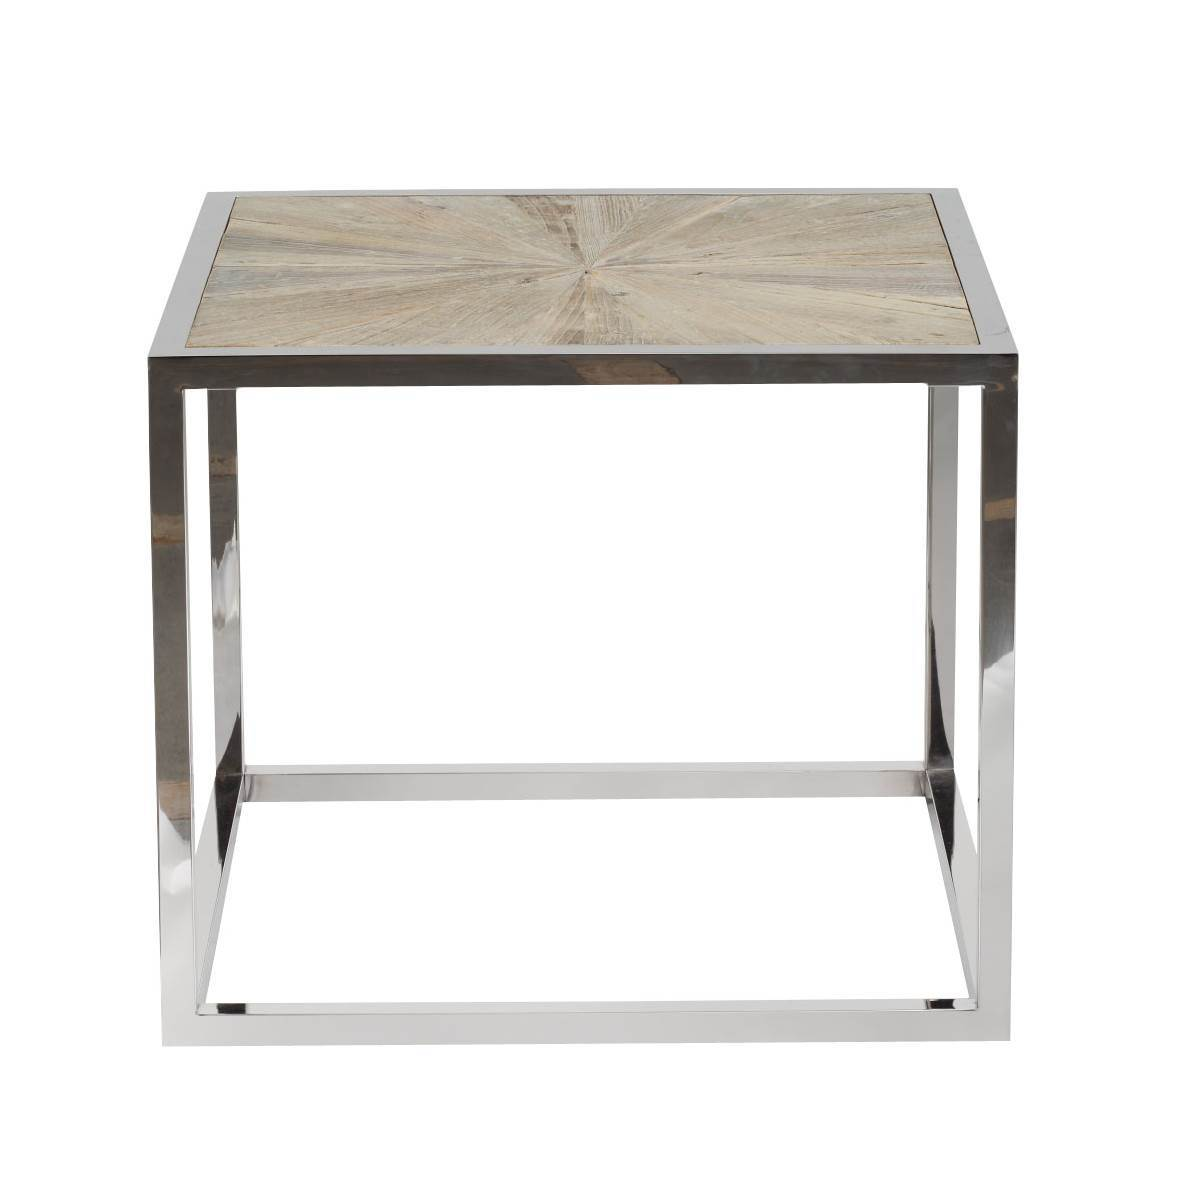 Parquet End Table in Smoke Gray Elm